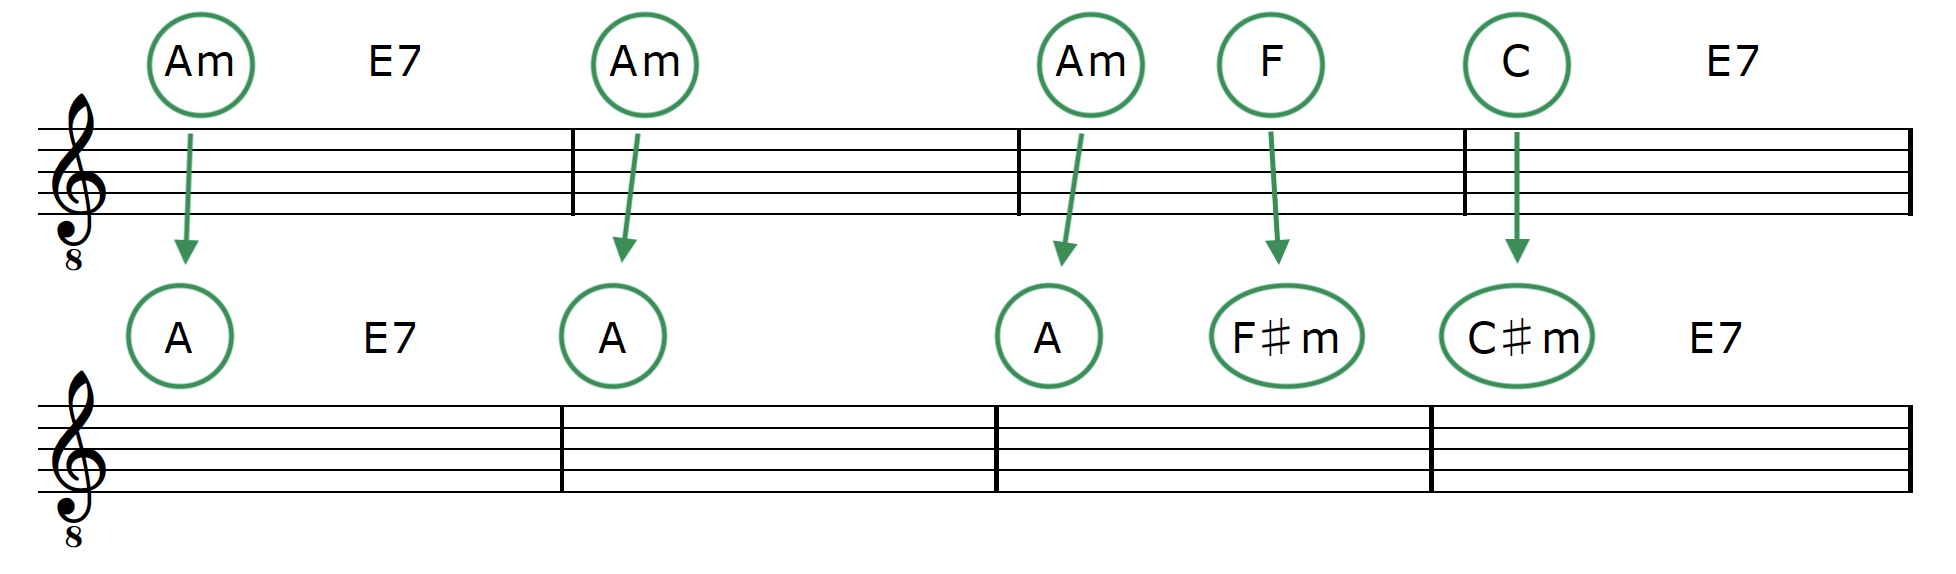 Parallel Key Modulation Chord Converted  1